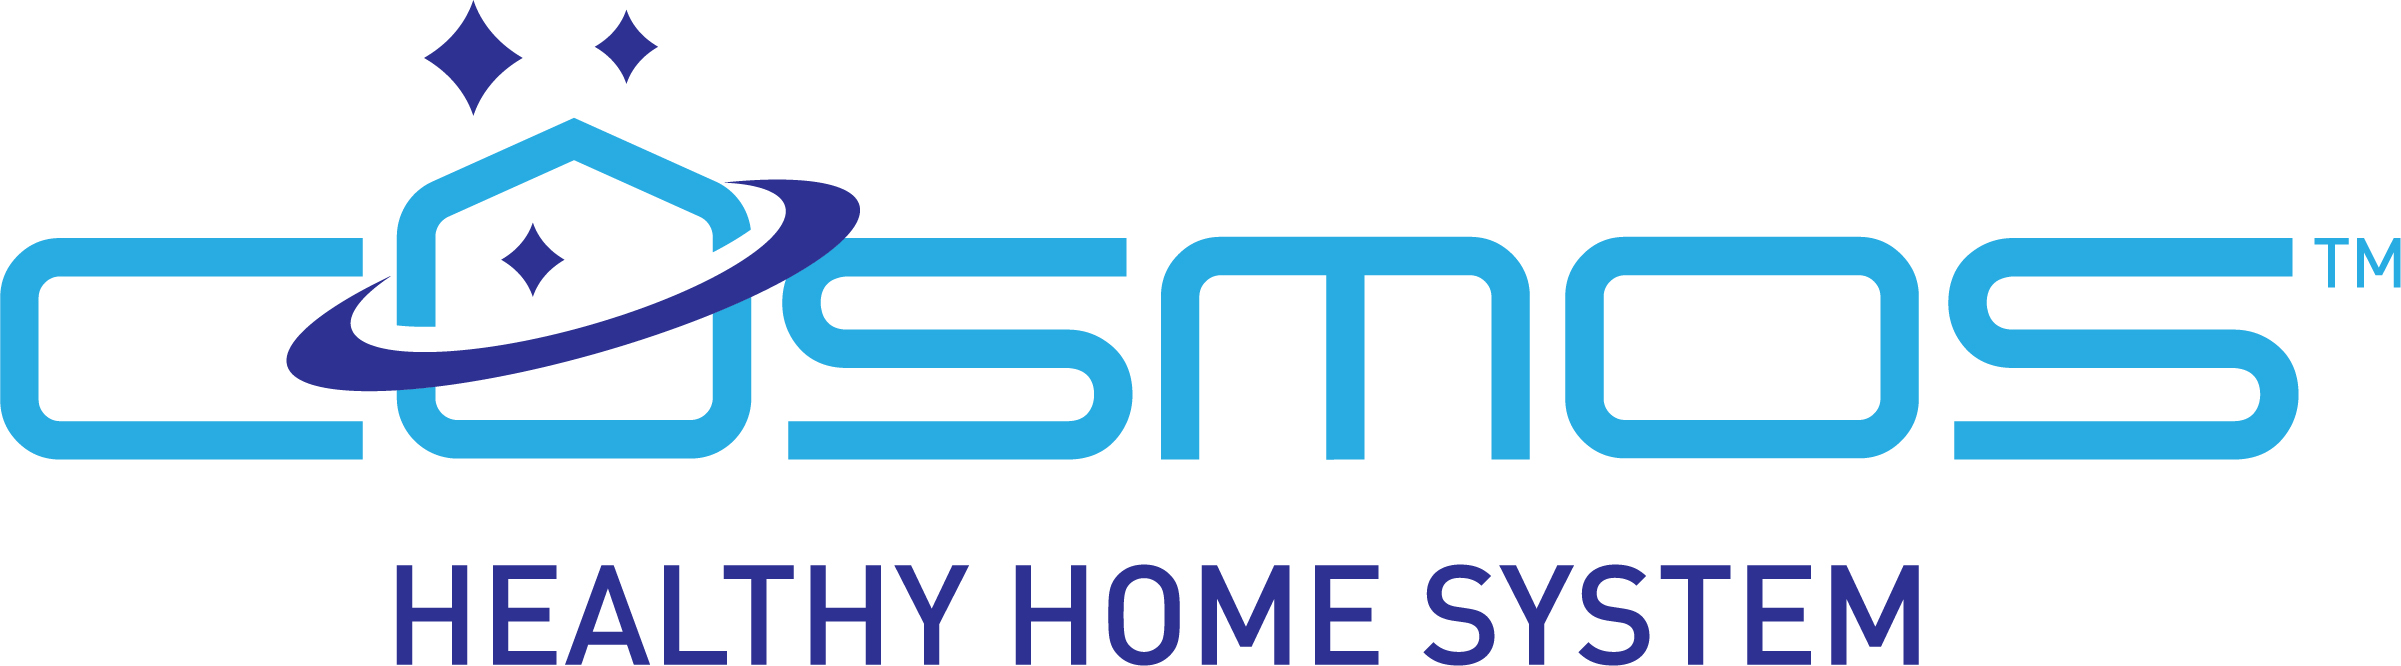 Cosmos Healthy Home System by Panasonic